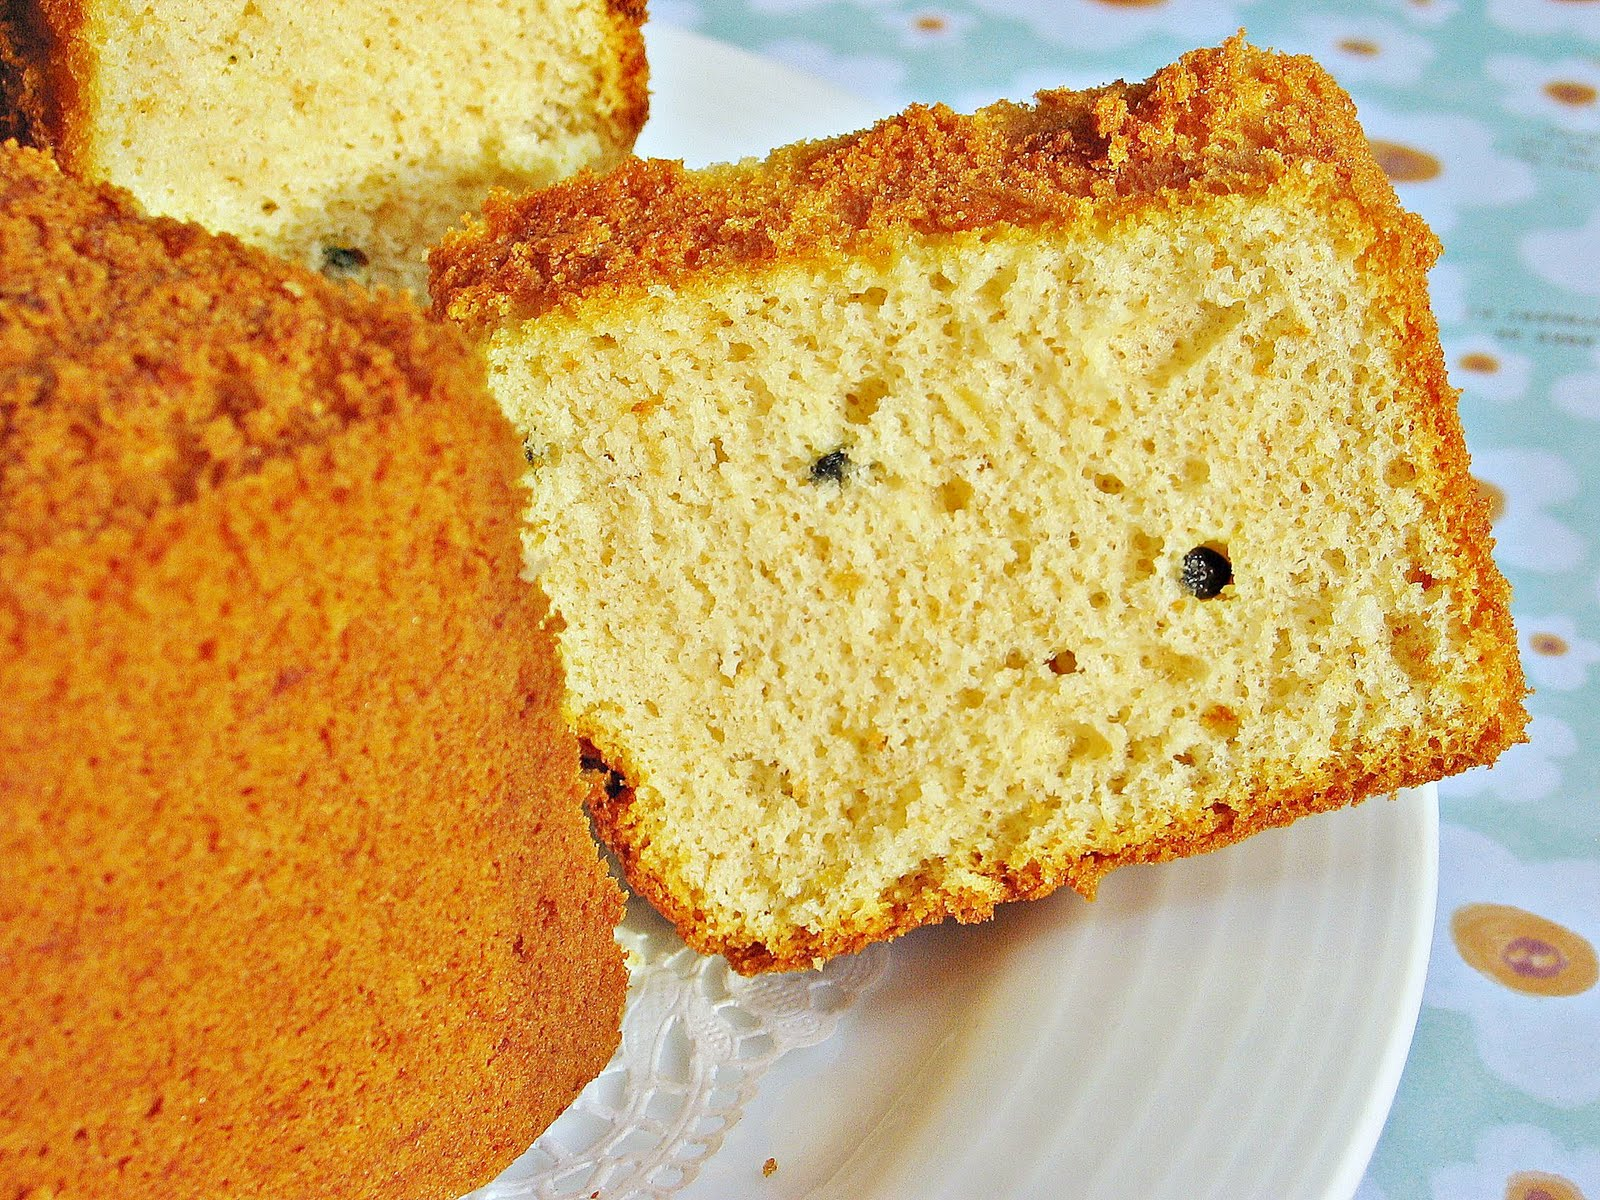 I Was Lucky That The Cake Was Nicely Baked Thoughere Wasn't Any Huge Holes